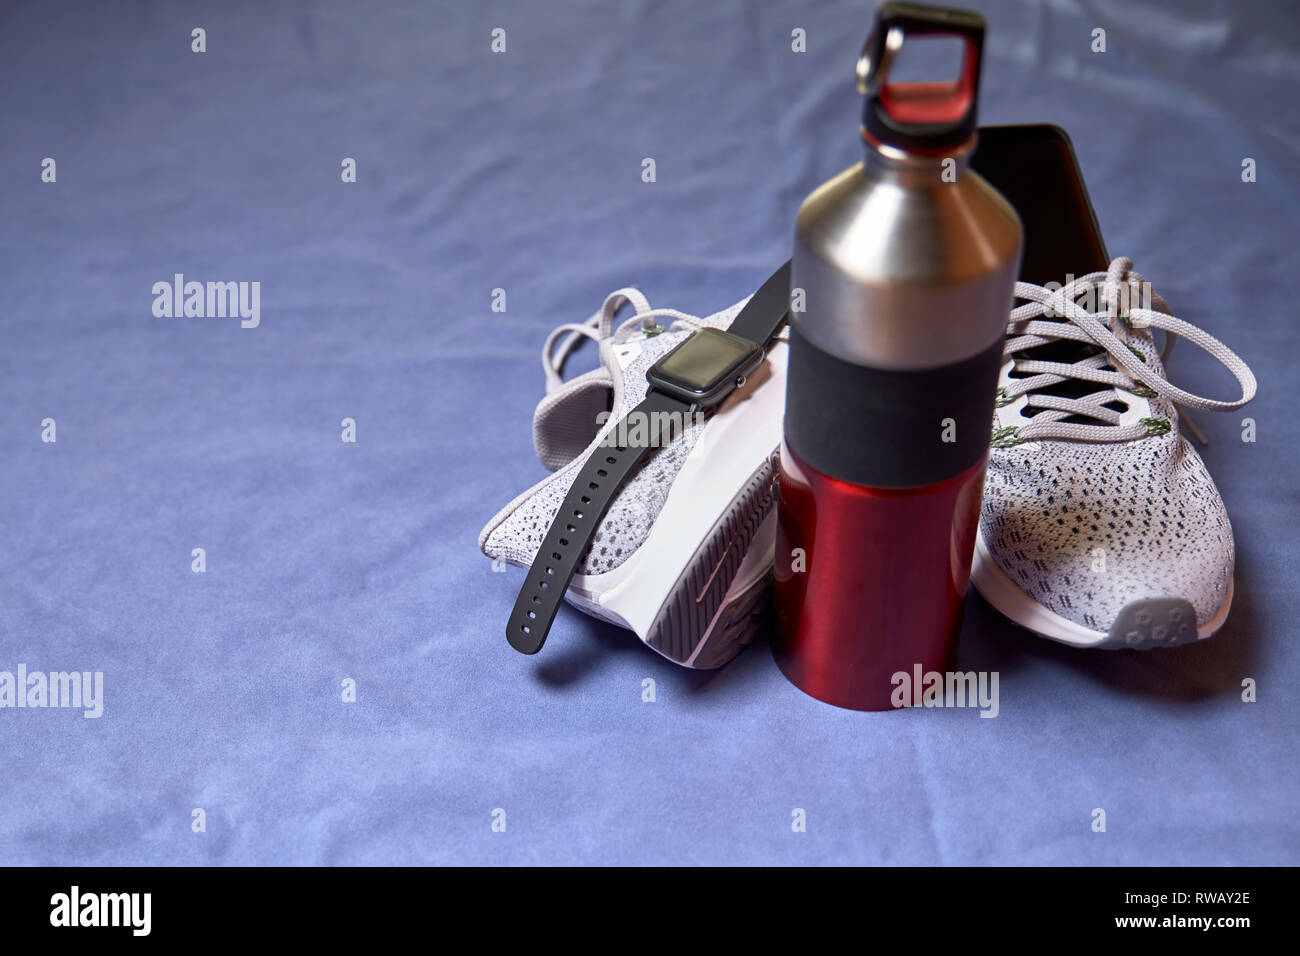 Running shoes with technological accessories and next to a water bottle on a blue towel - Stock Image